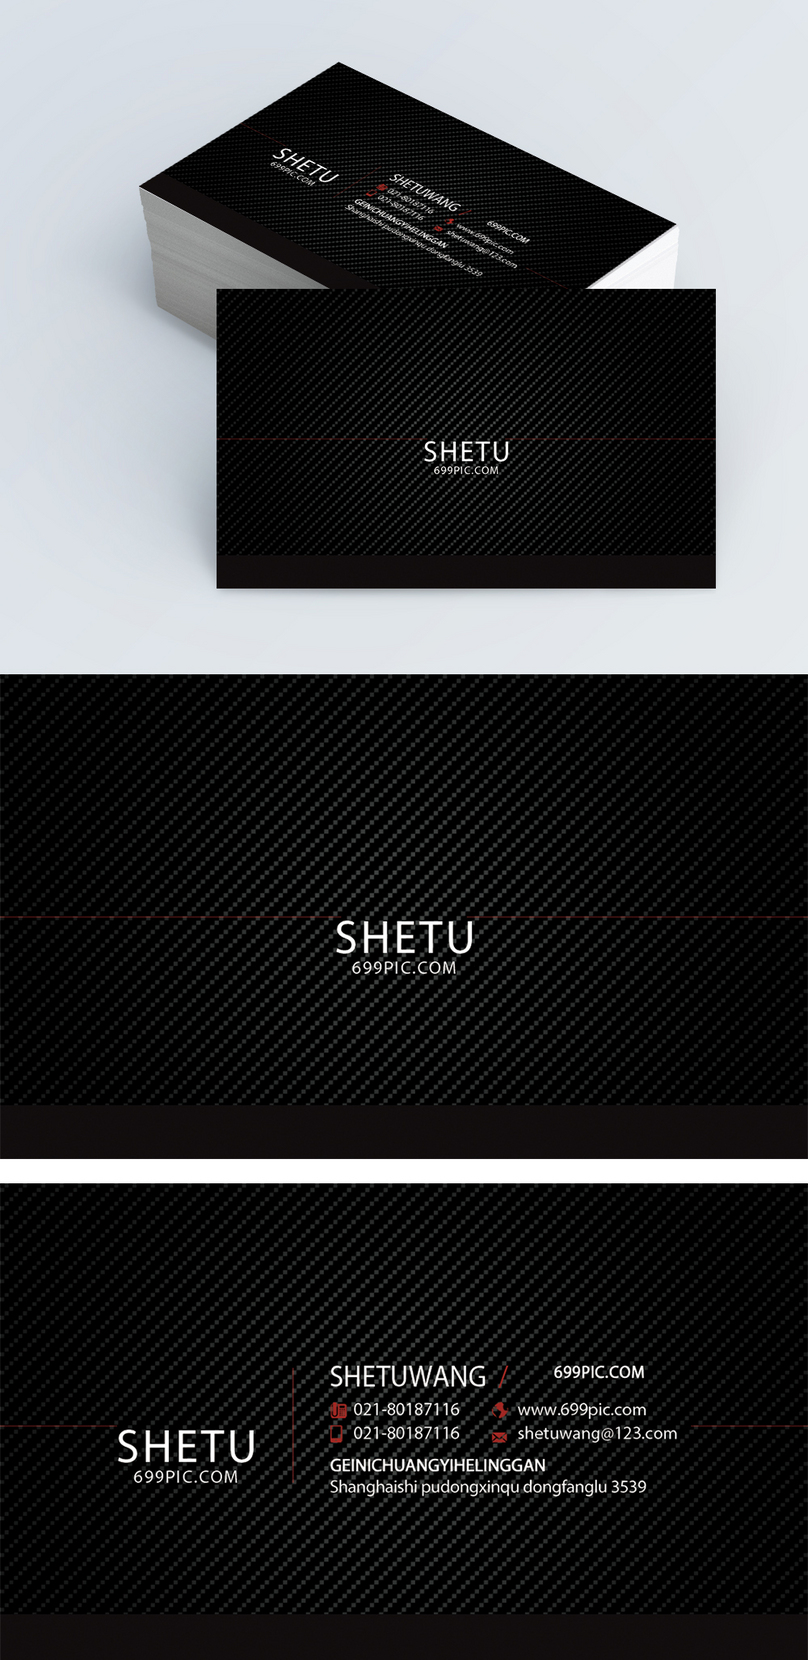 Design of high end business card in black atmosphere photo design of high end business card in black atmosphere reheart Images